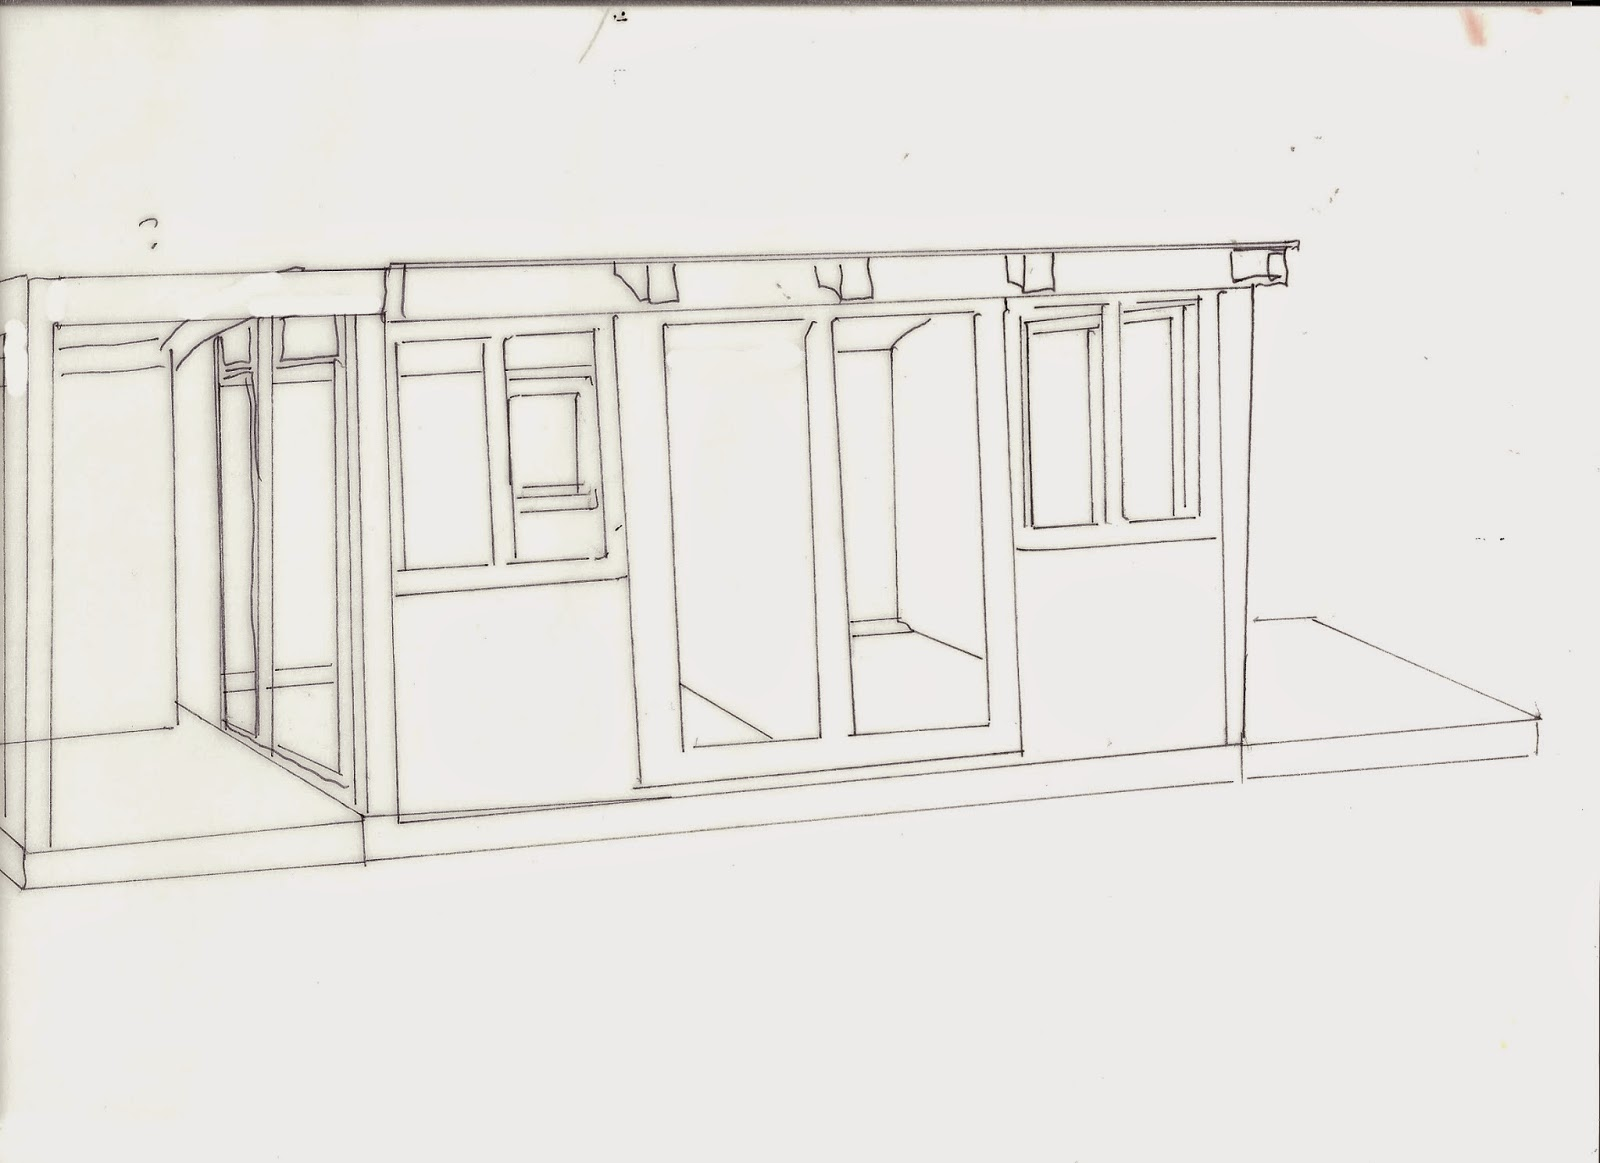 Outline of a shed split down the middle ,with two long windows and two short windows on the front and a deck on each side.